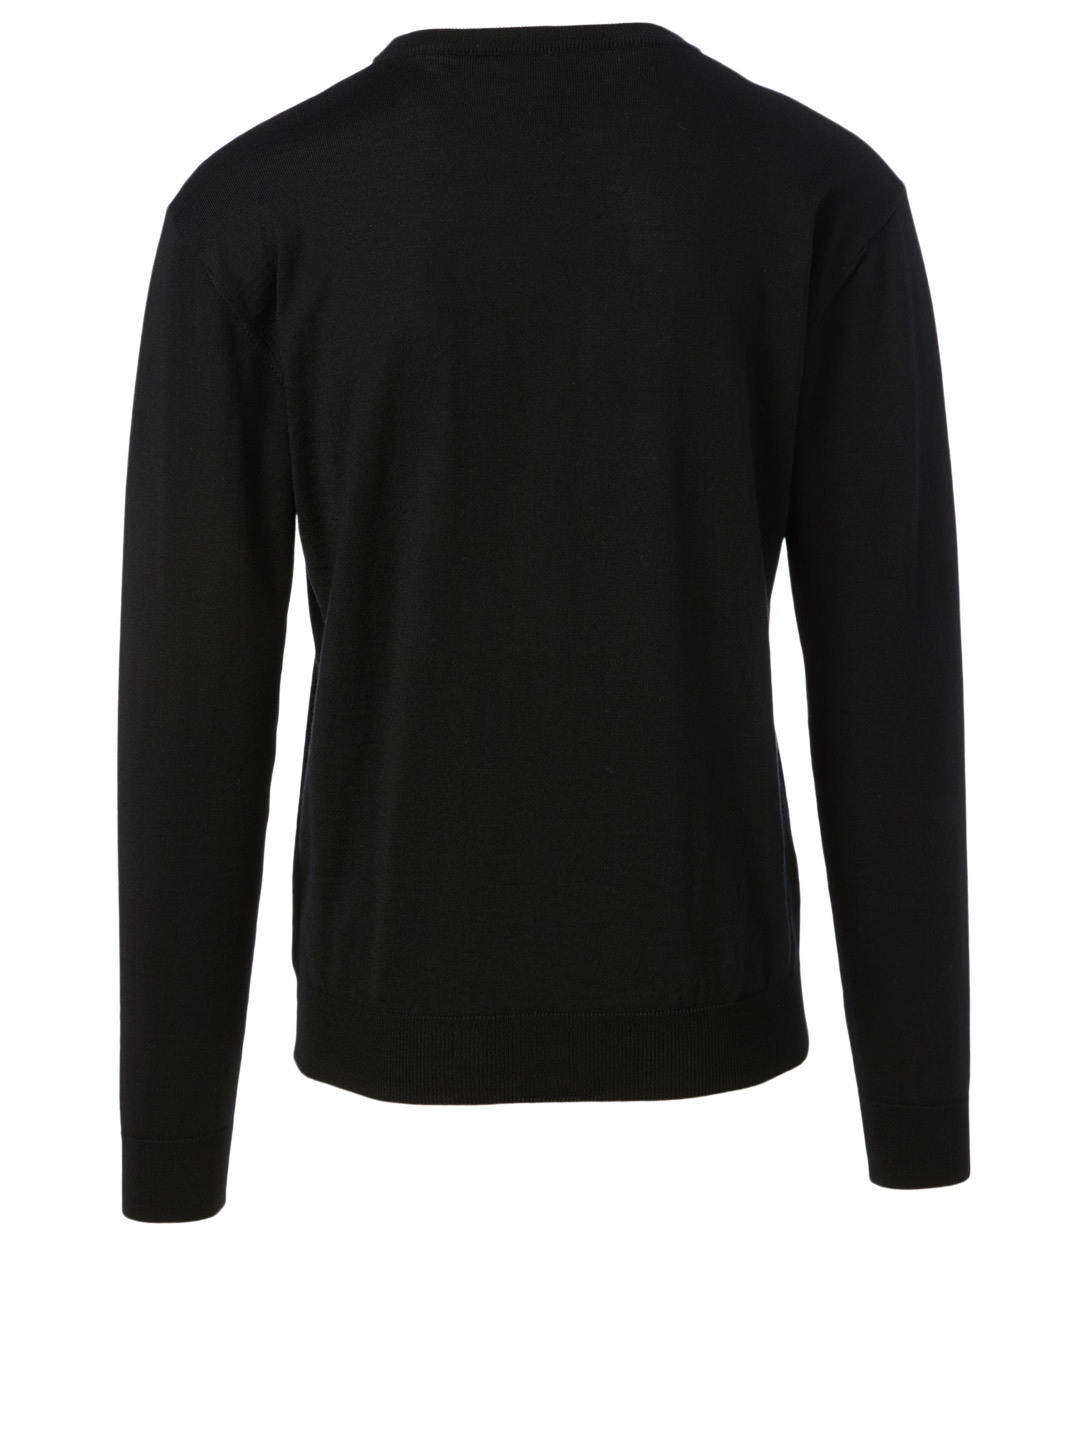 GIVENCHY Wool Sweatshirt With 3D Logo Men's Black